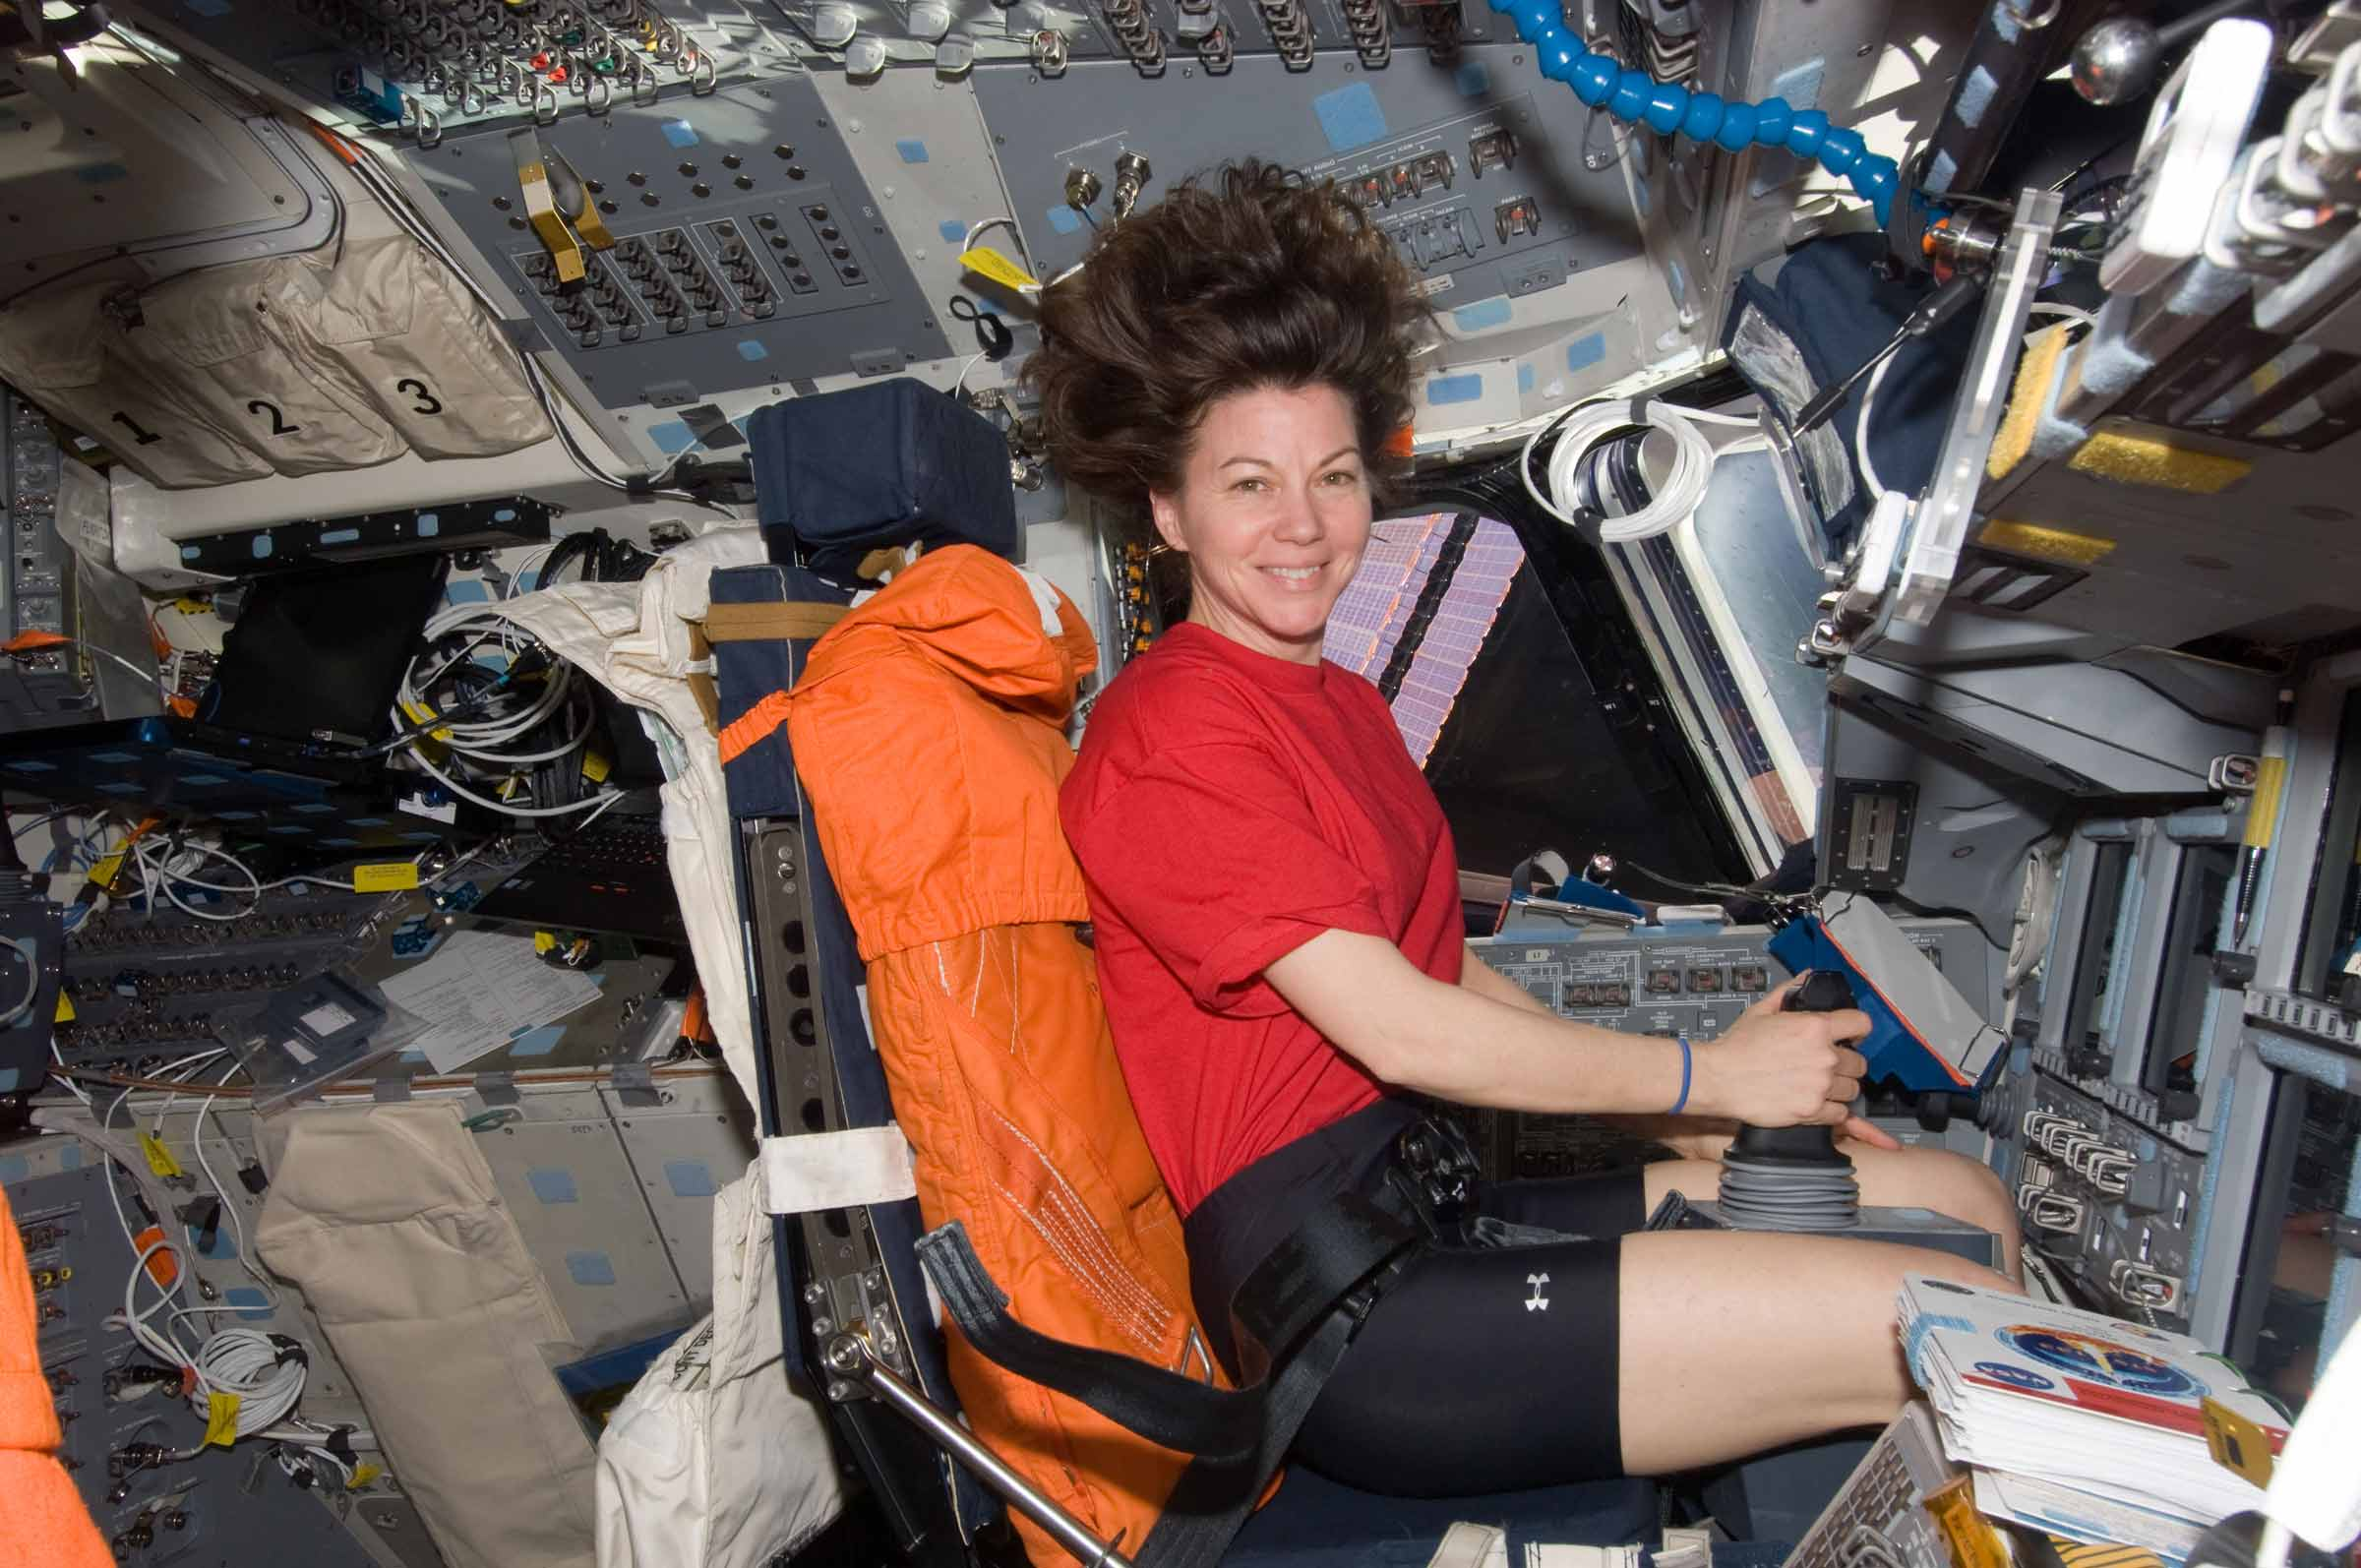 Astronaut Cady Coleman. Photo courtesy of NASA.